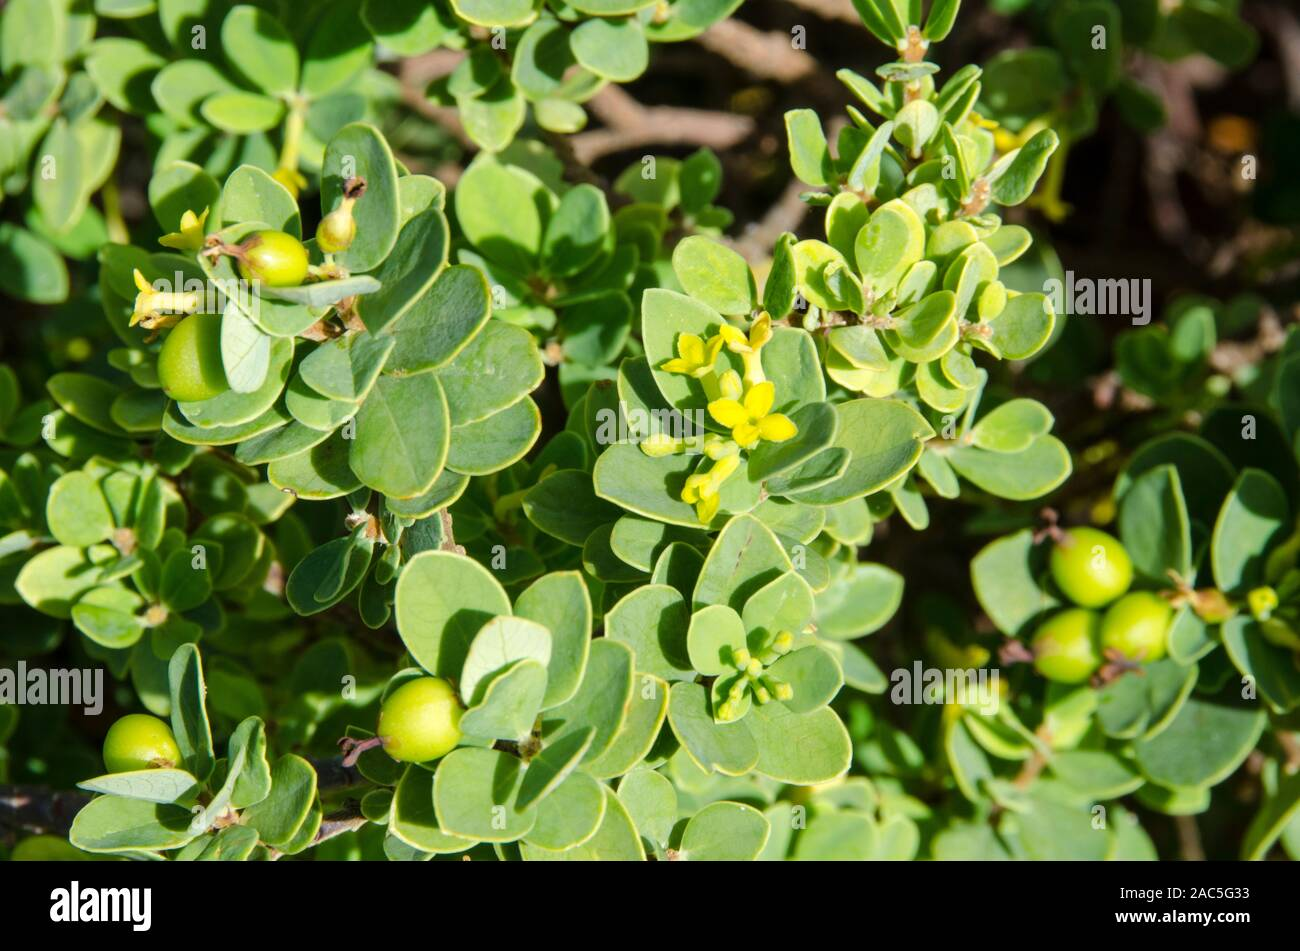 The native Hawaiian 'akia plant is either male or female. Female plants, after flowering, produce attractive round fruits that are yellow, orange or r Stock Photo